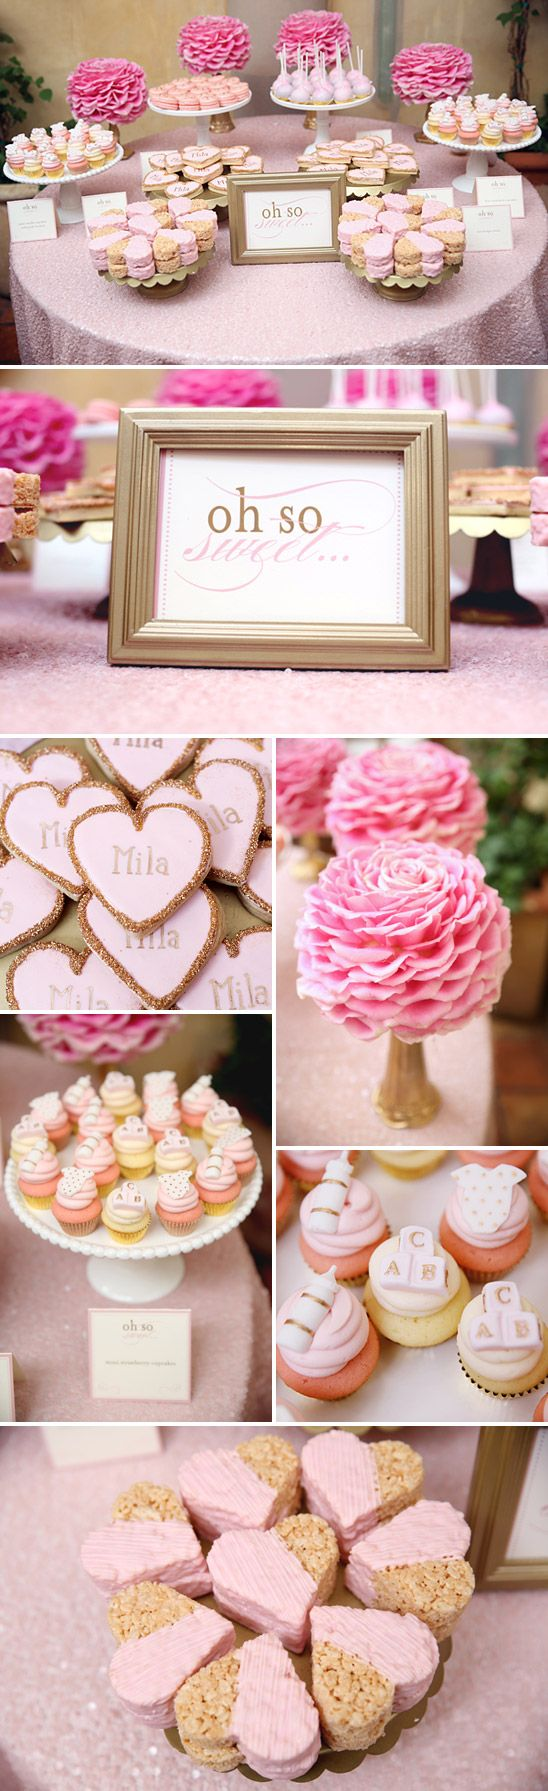 A Feminine Elegant Baby Shower In Pink And Gold Feast Party Place